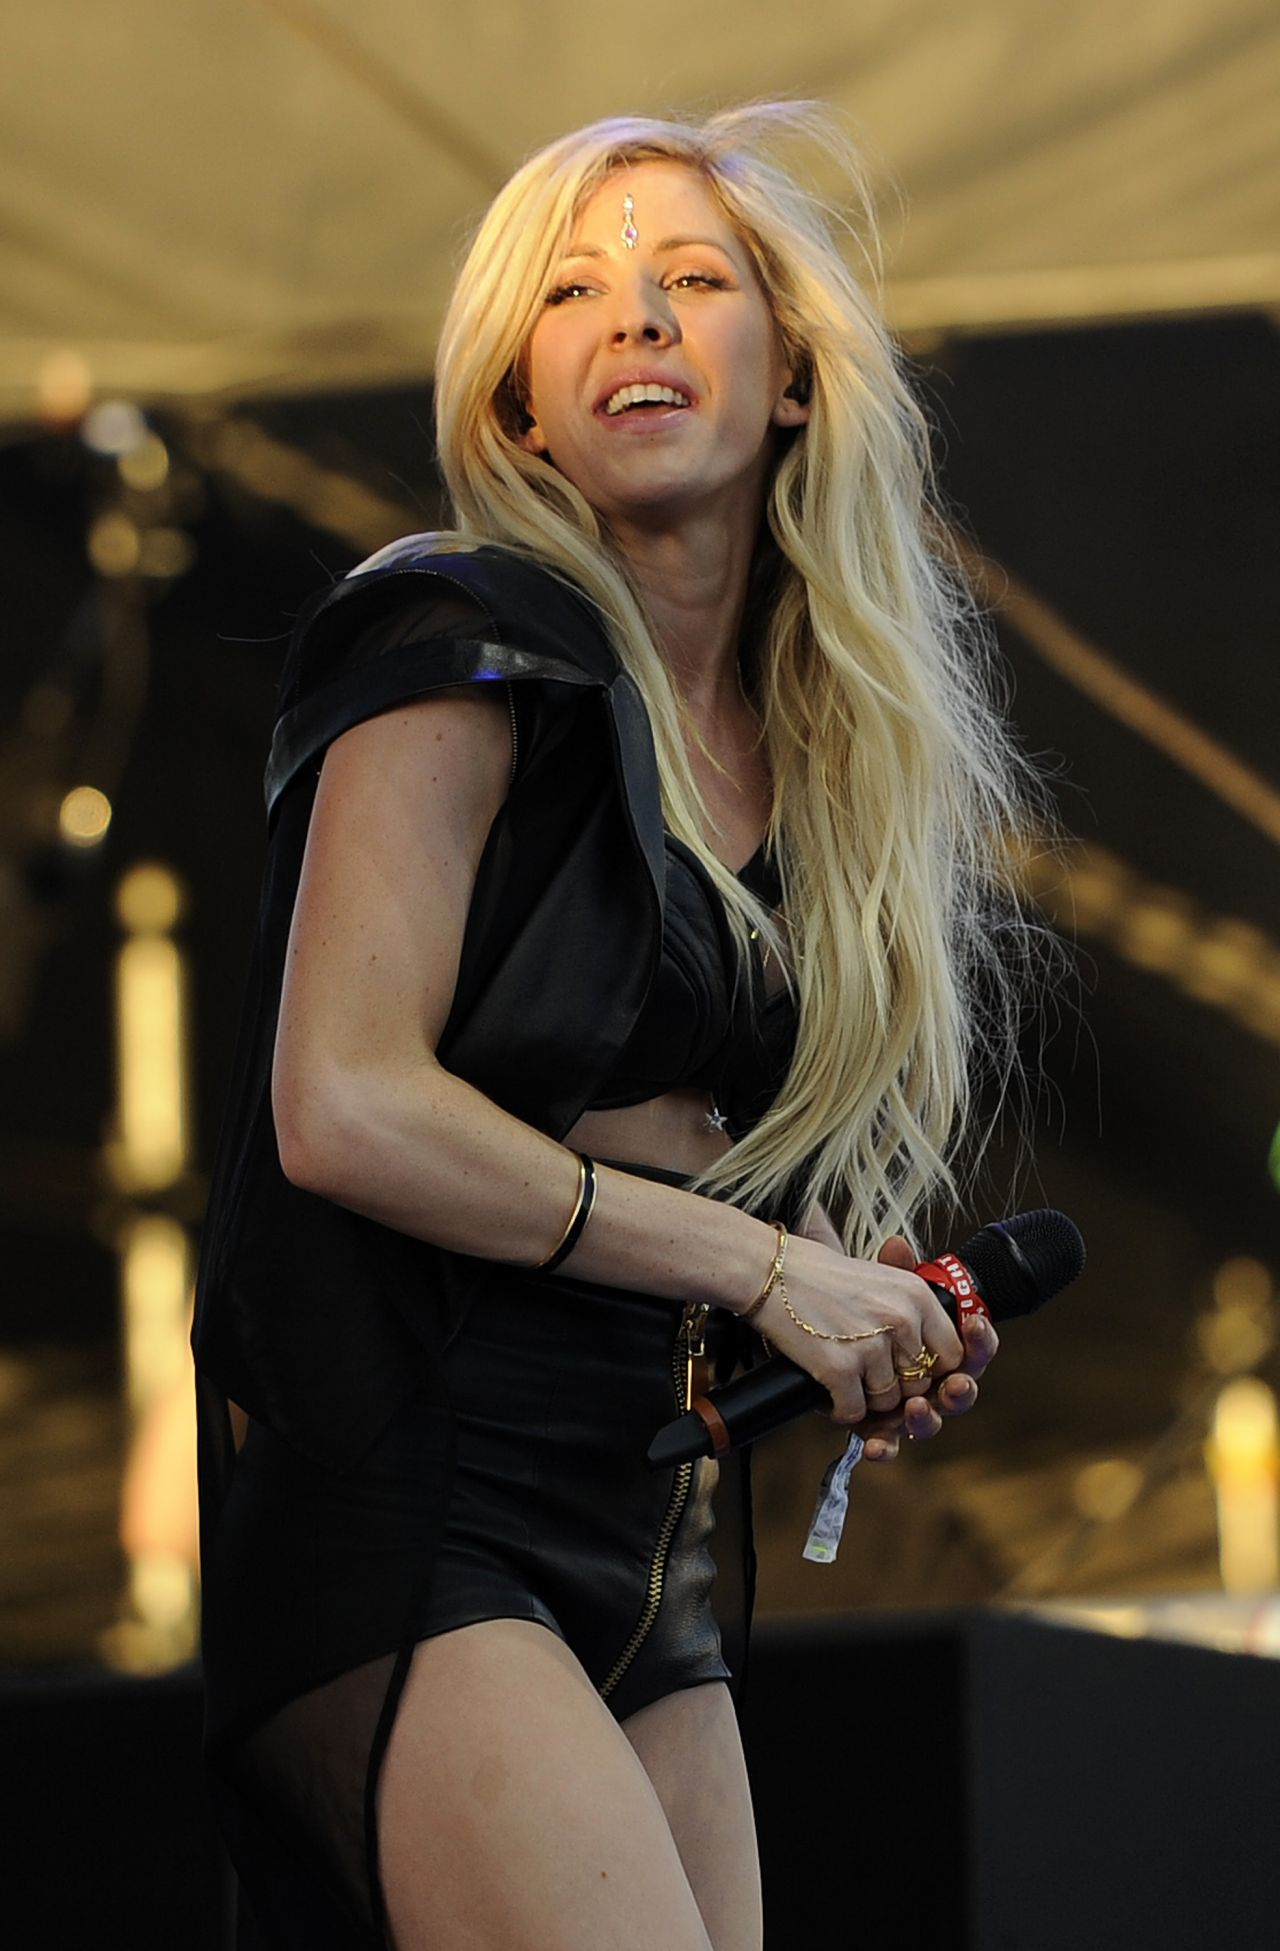 Ellie Goulding Performs at Coachella Music and Arts Festival - April 2014